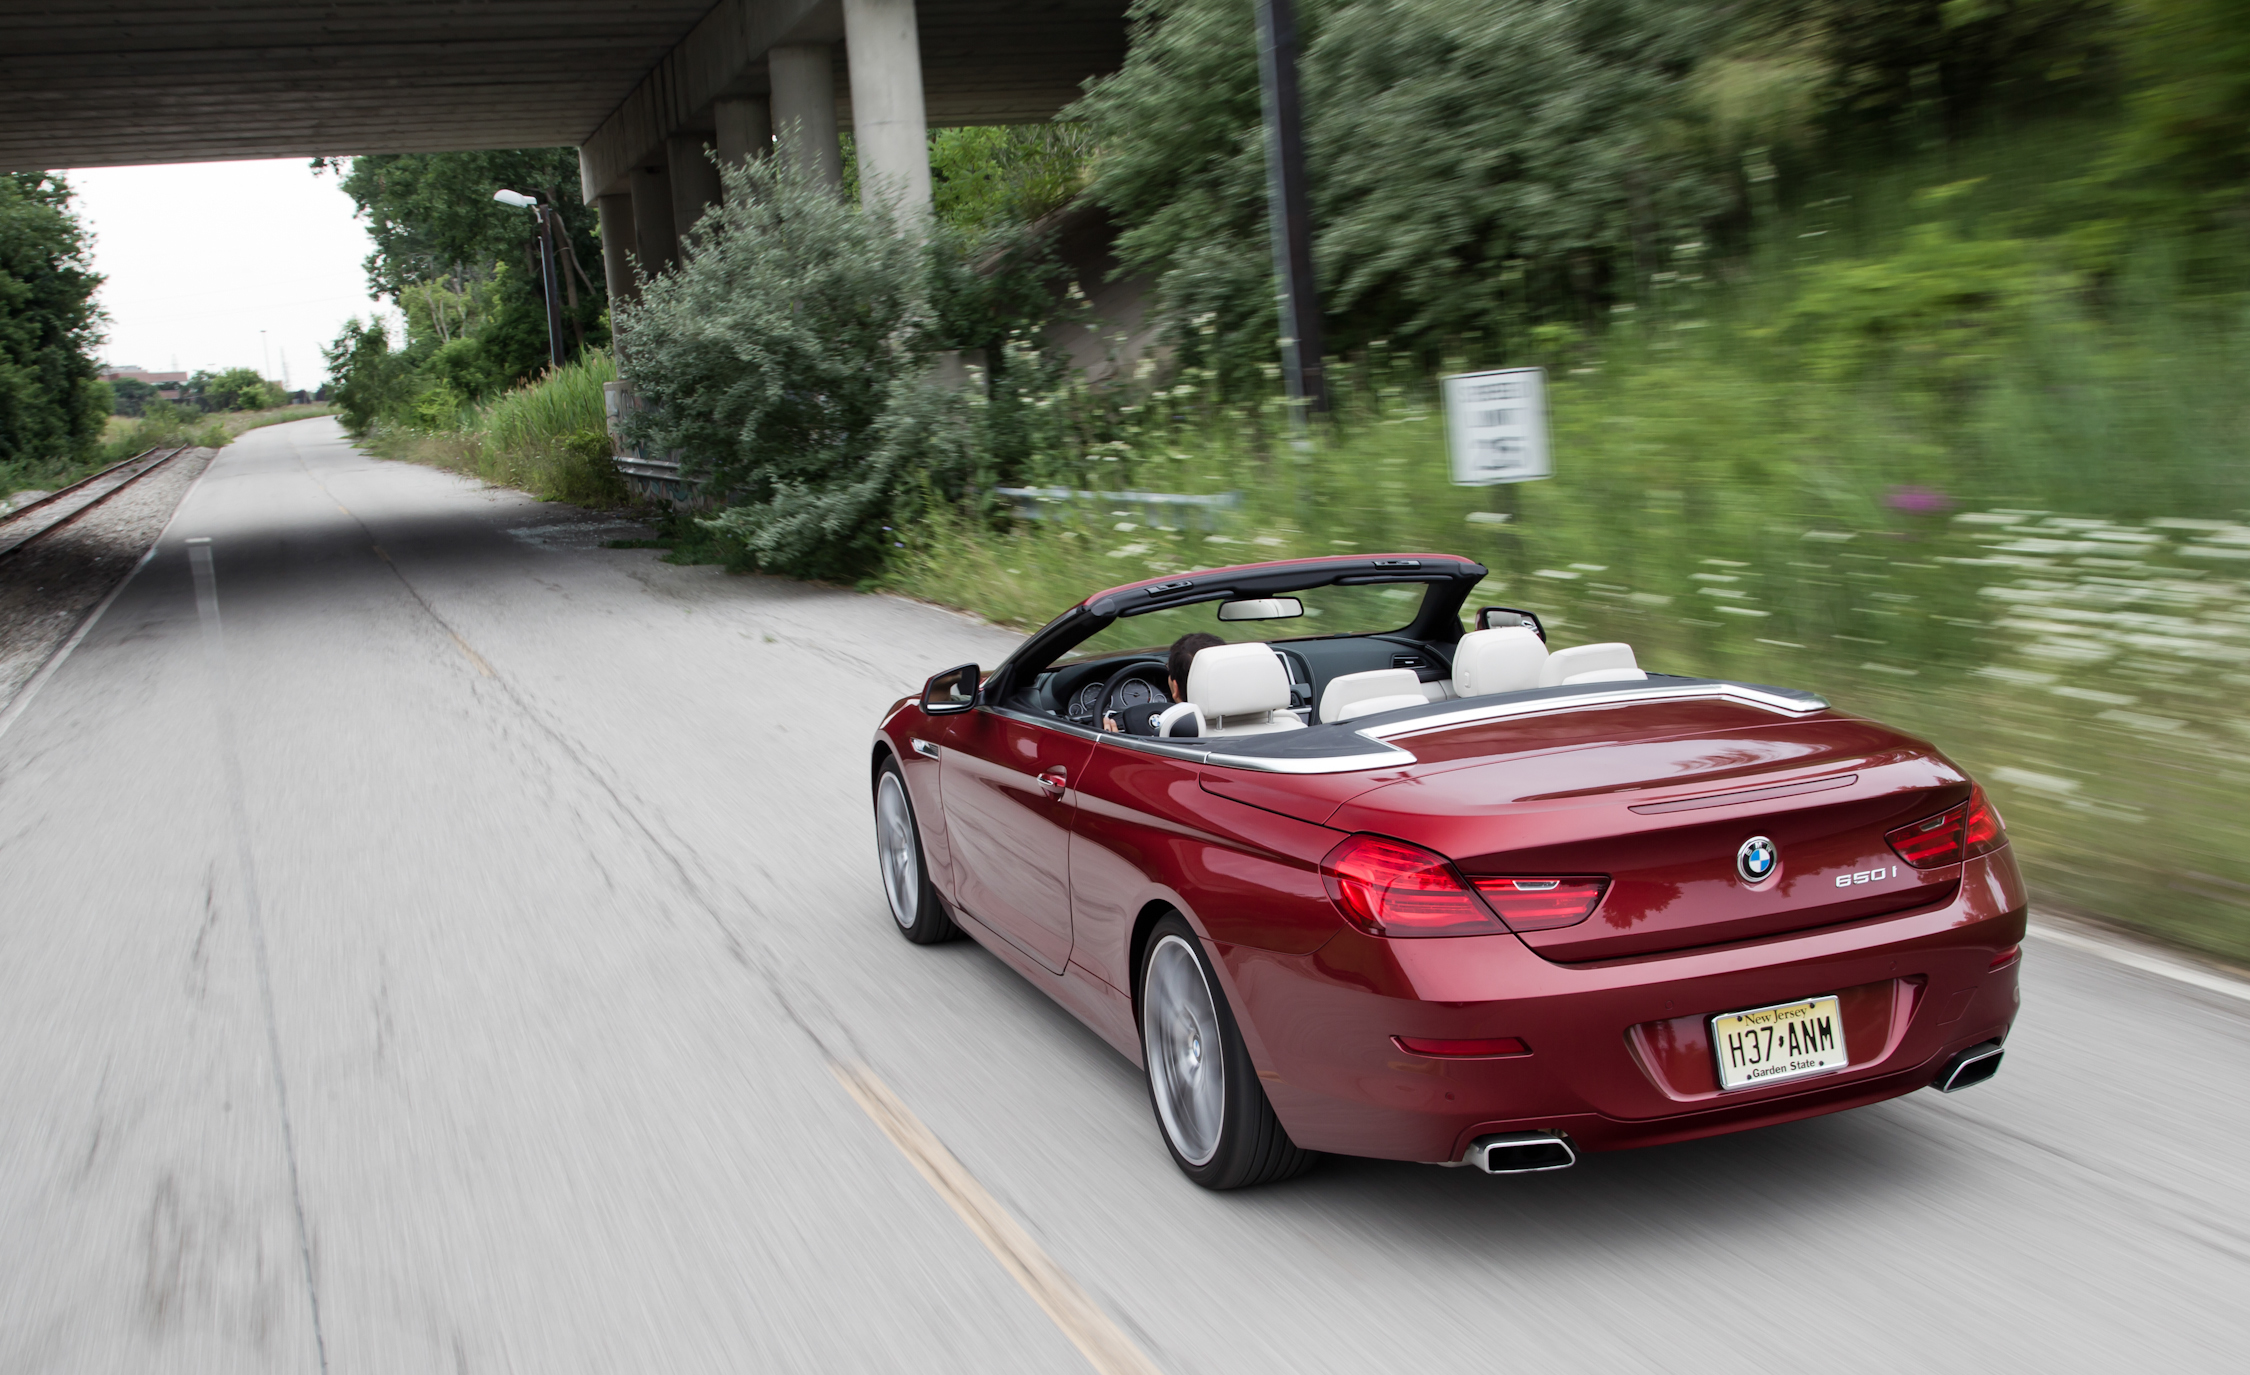 2012 BMW 650i Convertible Test Drive Side And Rear View (Photo 18 of 19)